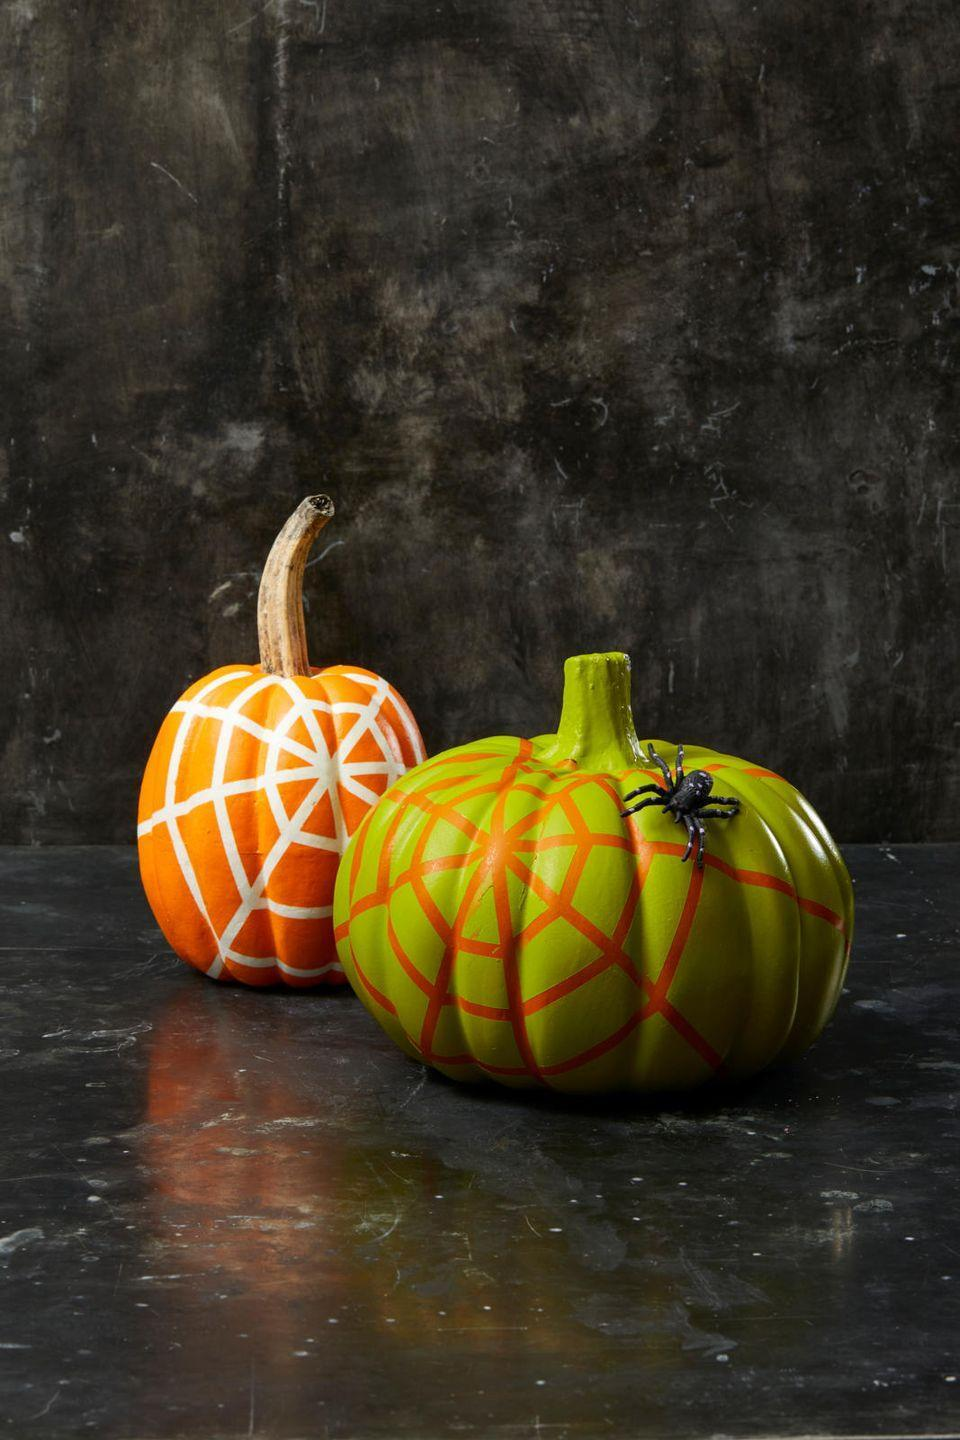 "<p>Use long strips of tape to create a web pattern on a pumpkin. Then, spray light, even strokes of spray paint over the entire surface, letting it dry completely and adding additional coats when needed. Once fully dry, carefully peel off the tape. Glue on a fake spider to complete!</p><p><a class=""link rapid-noclick-resp"" href=""https://www.amazon.com/Muzboo-Realistic-Plastic-Halloween-Decorations/dp/B07CVJ3LBN/?tag=syn-yahoo-20&ascsubtag=%5Bartid%7C10055.g.1714%5Bsrc%7Cyahoo-us"" rel=""nofollow noopener"" target=""_blank"" data-ylk=""slk:SHOP FAKE SPIDERS"">SHOP FAKE SPIDERS</a></p>"